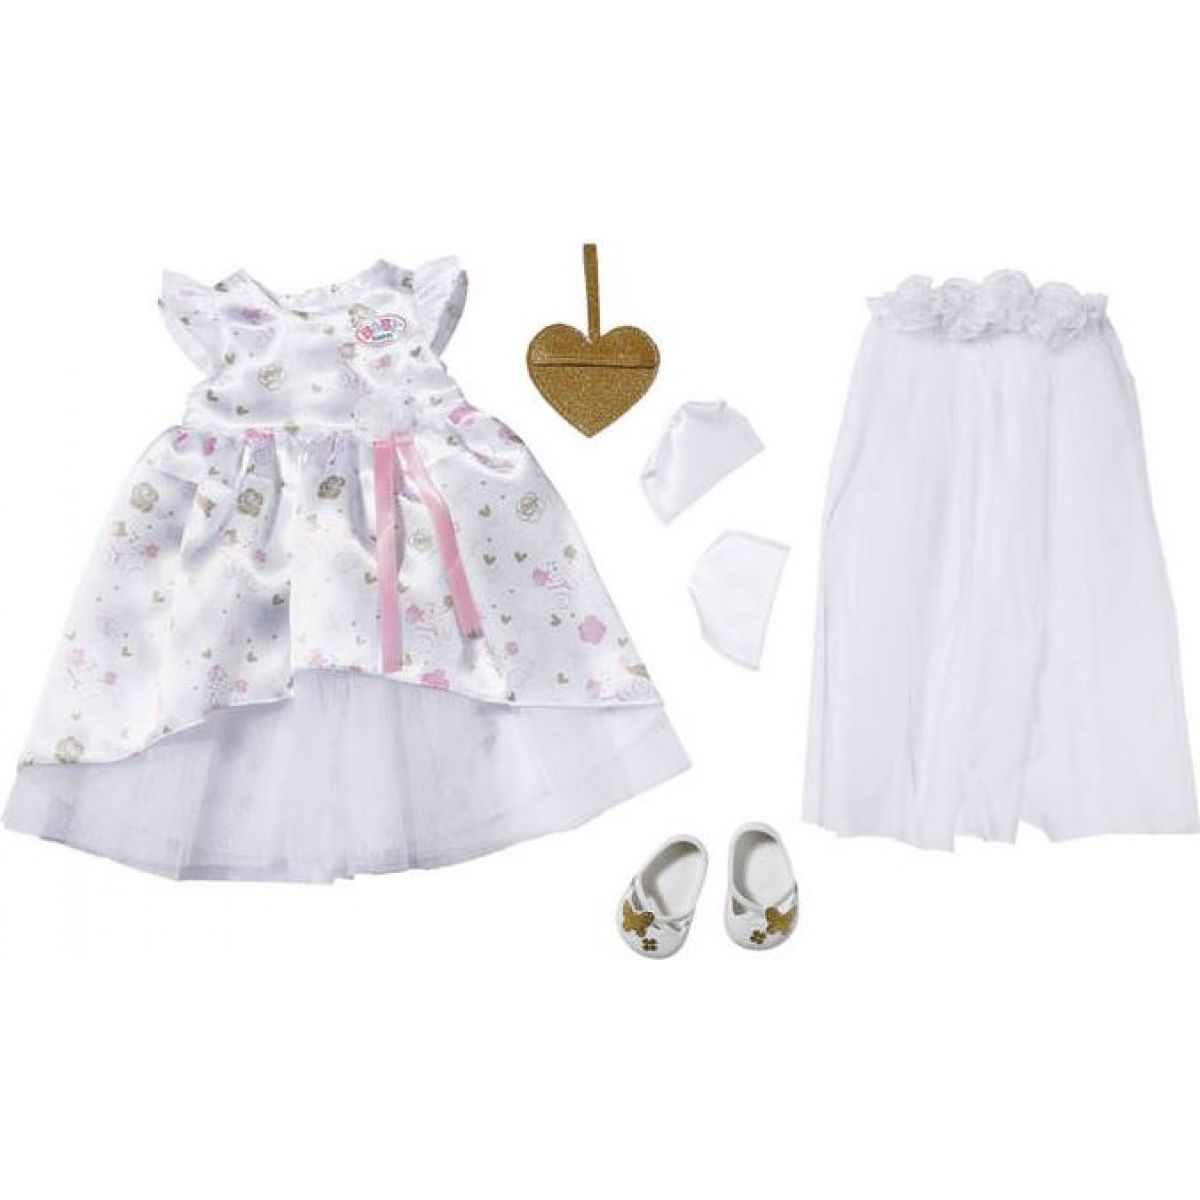 Zapf Creation BABY born Boutique Deluxe Bride 43cm